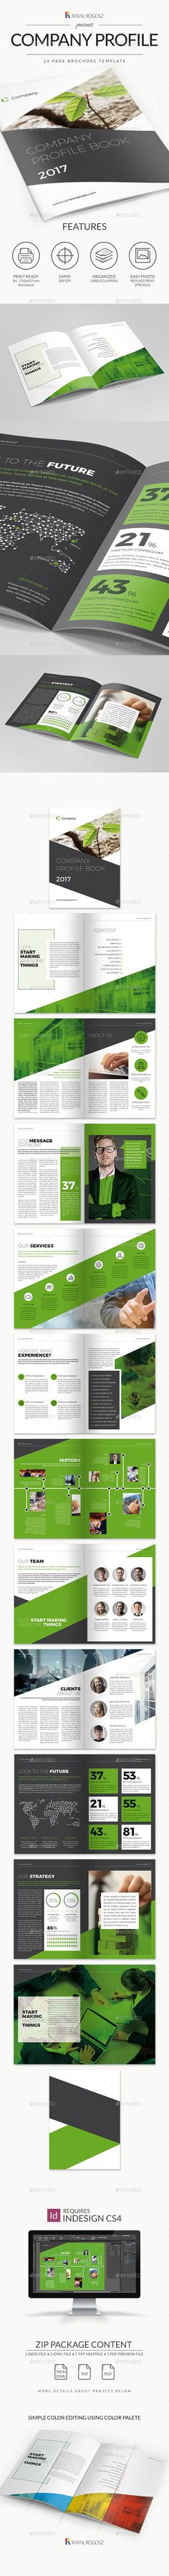 Company Profile brochure 2017 — Photoshop PSD #portfolio #design • Download ➝ https://graphicriver.net/item/company-profile-brochure-2017/18823239?ref=pxcr